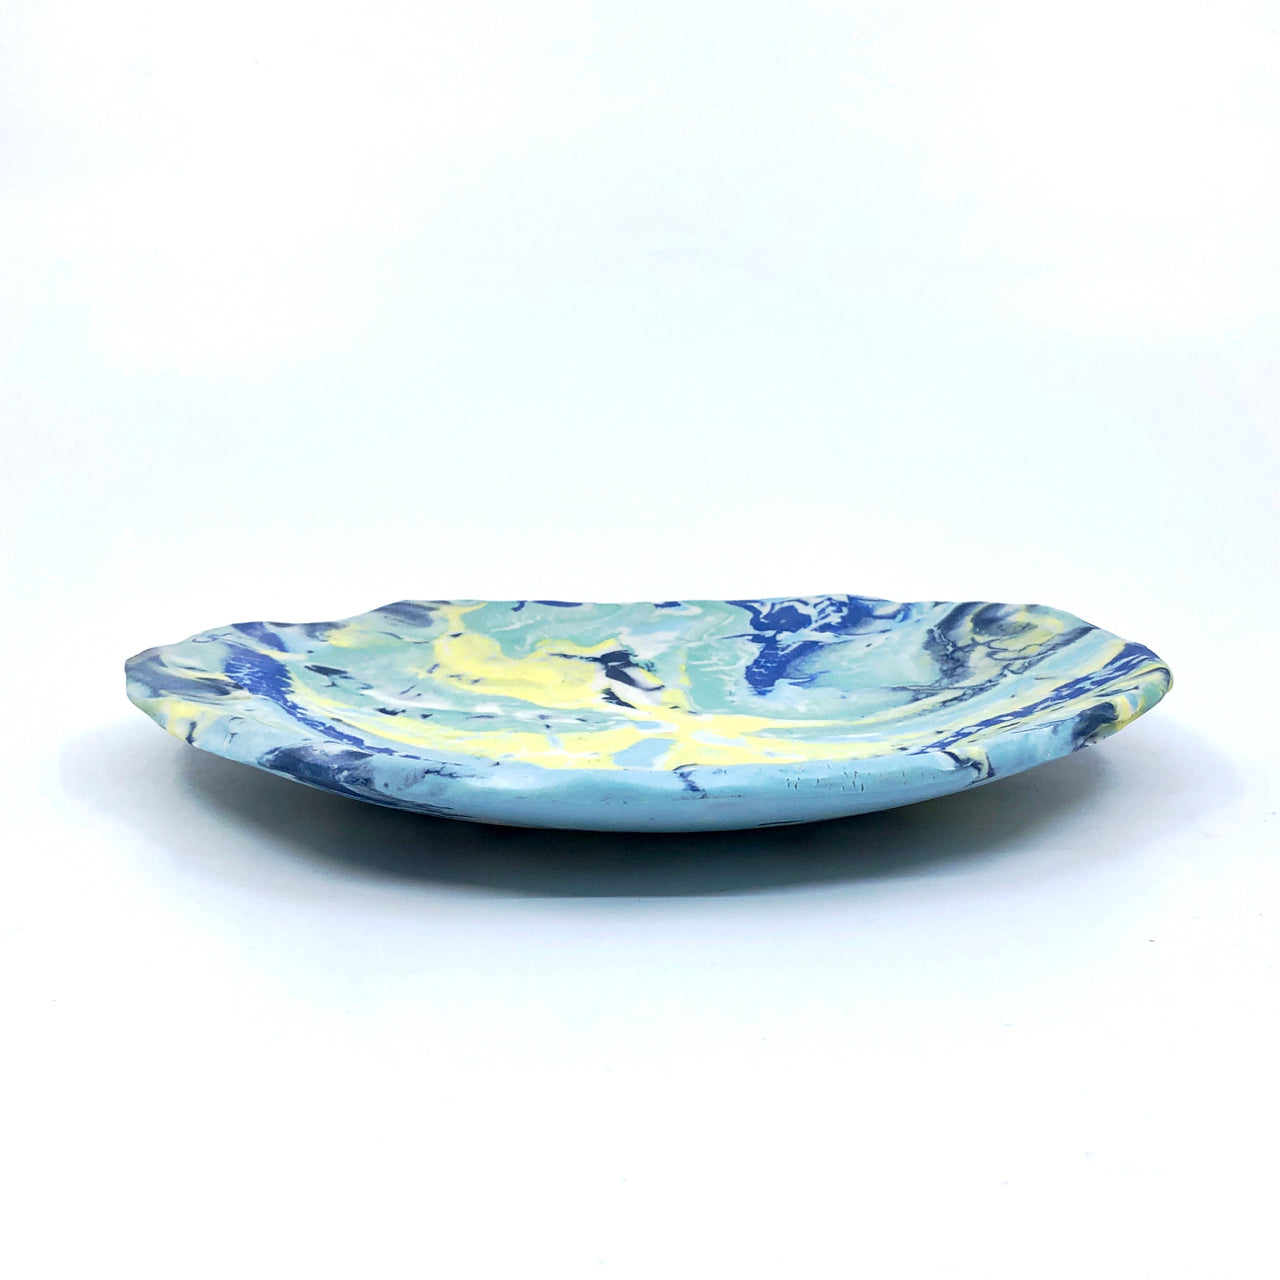 Tropical Ocean Marbled Medium Display Platter